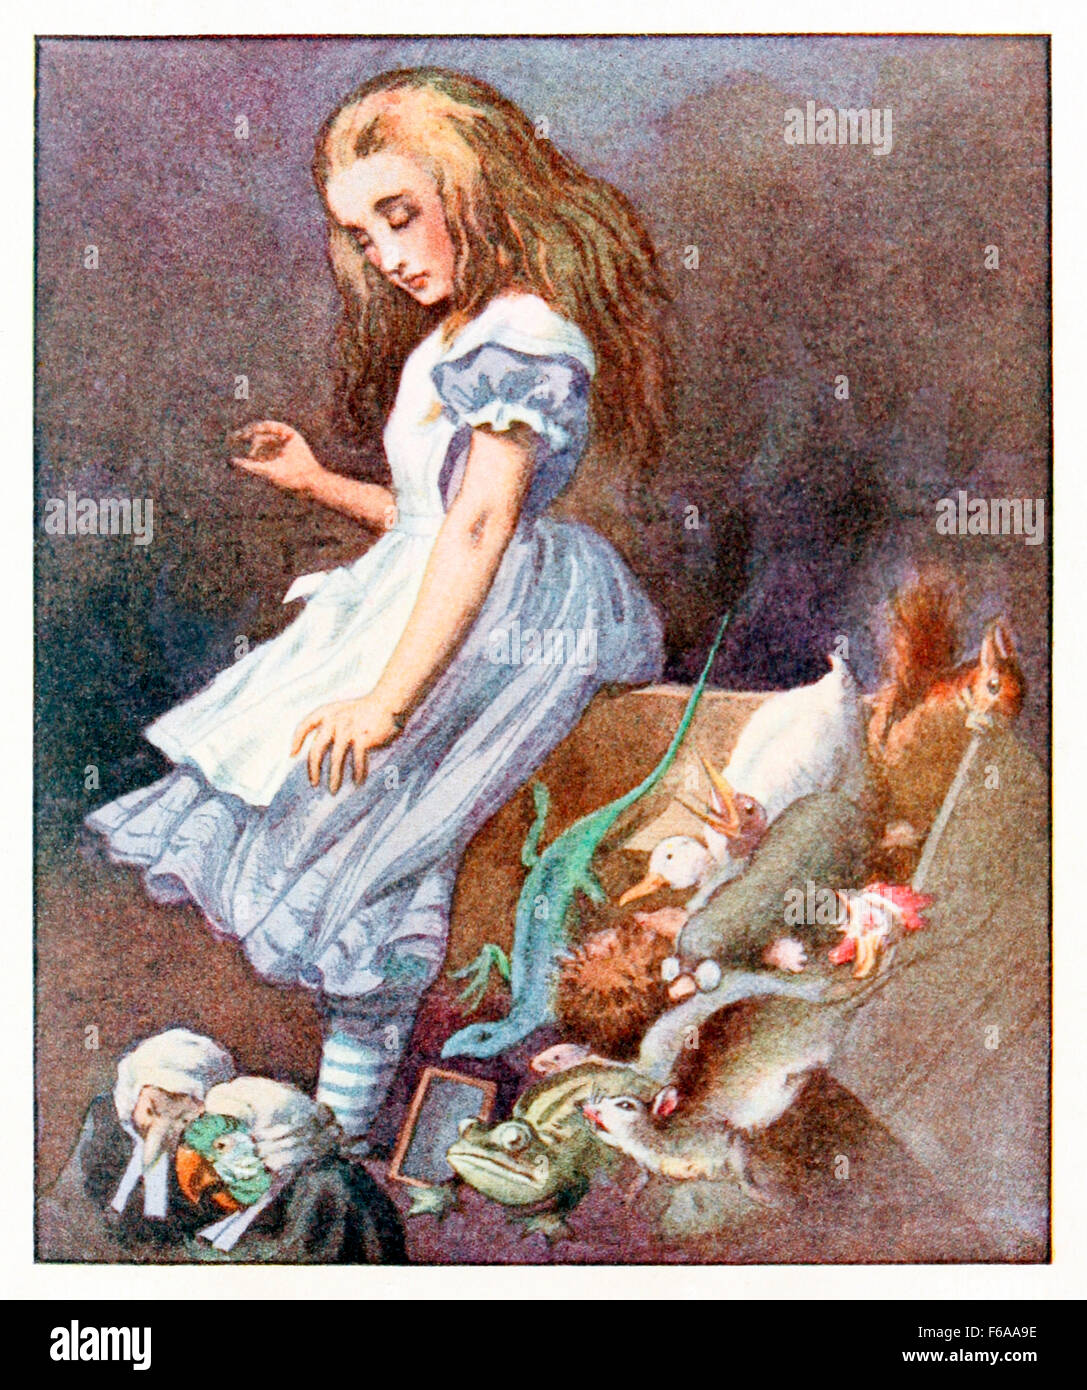 'She jumped up in such a hurry that she tipped over the jury-box with the edge of her skirt' from 'Alice's - Stock Image